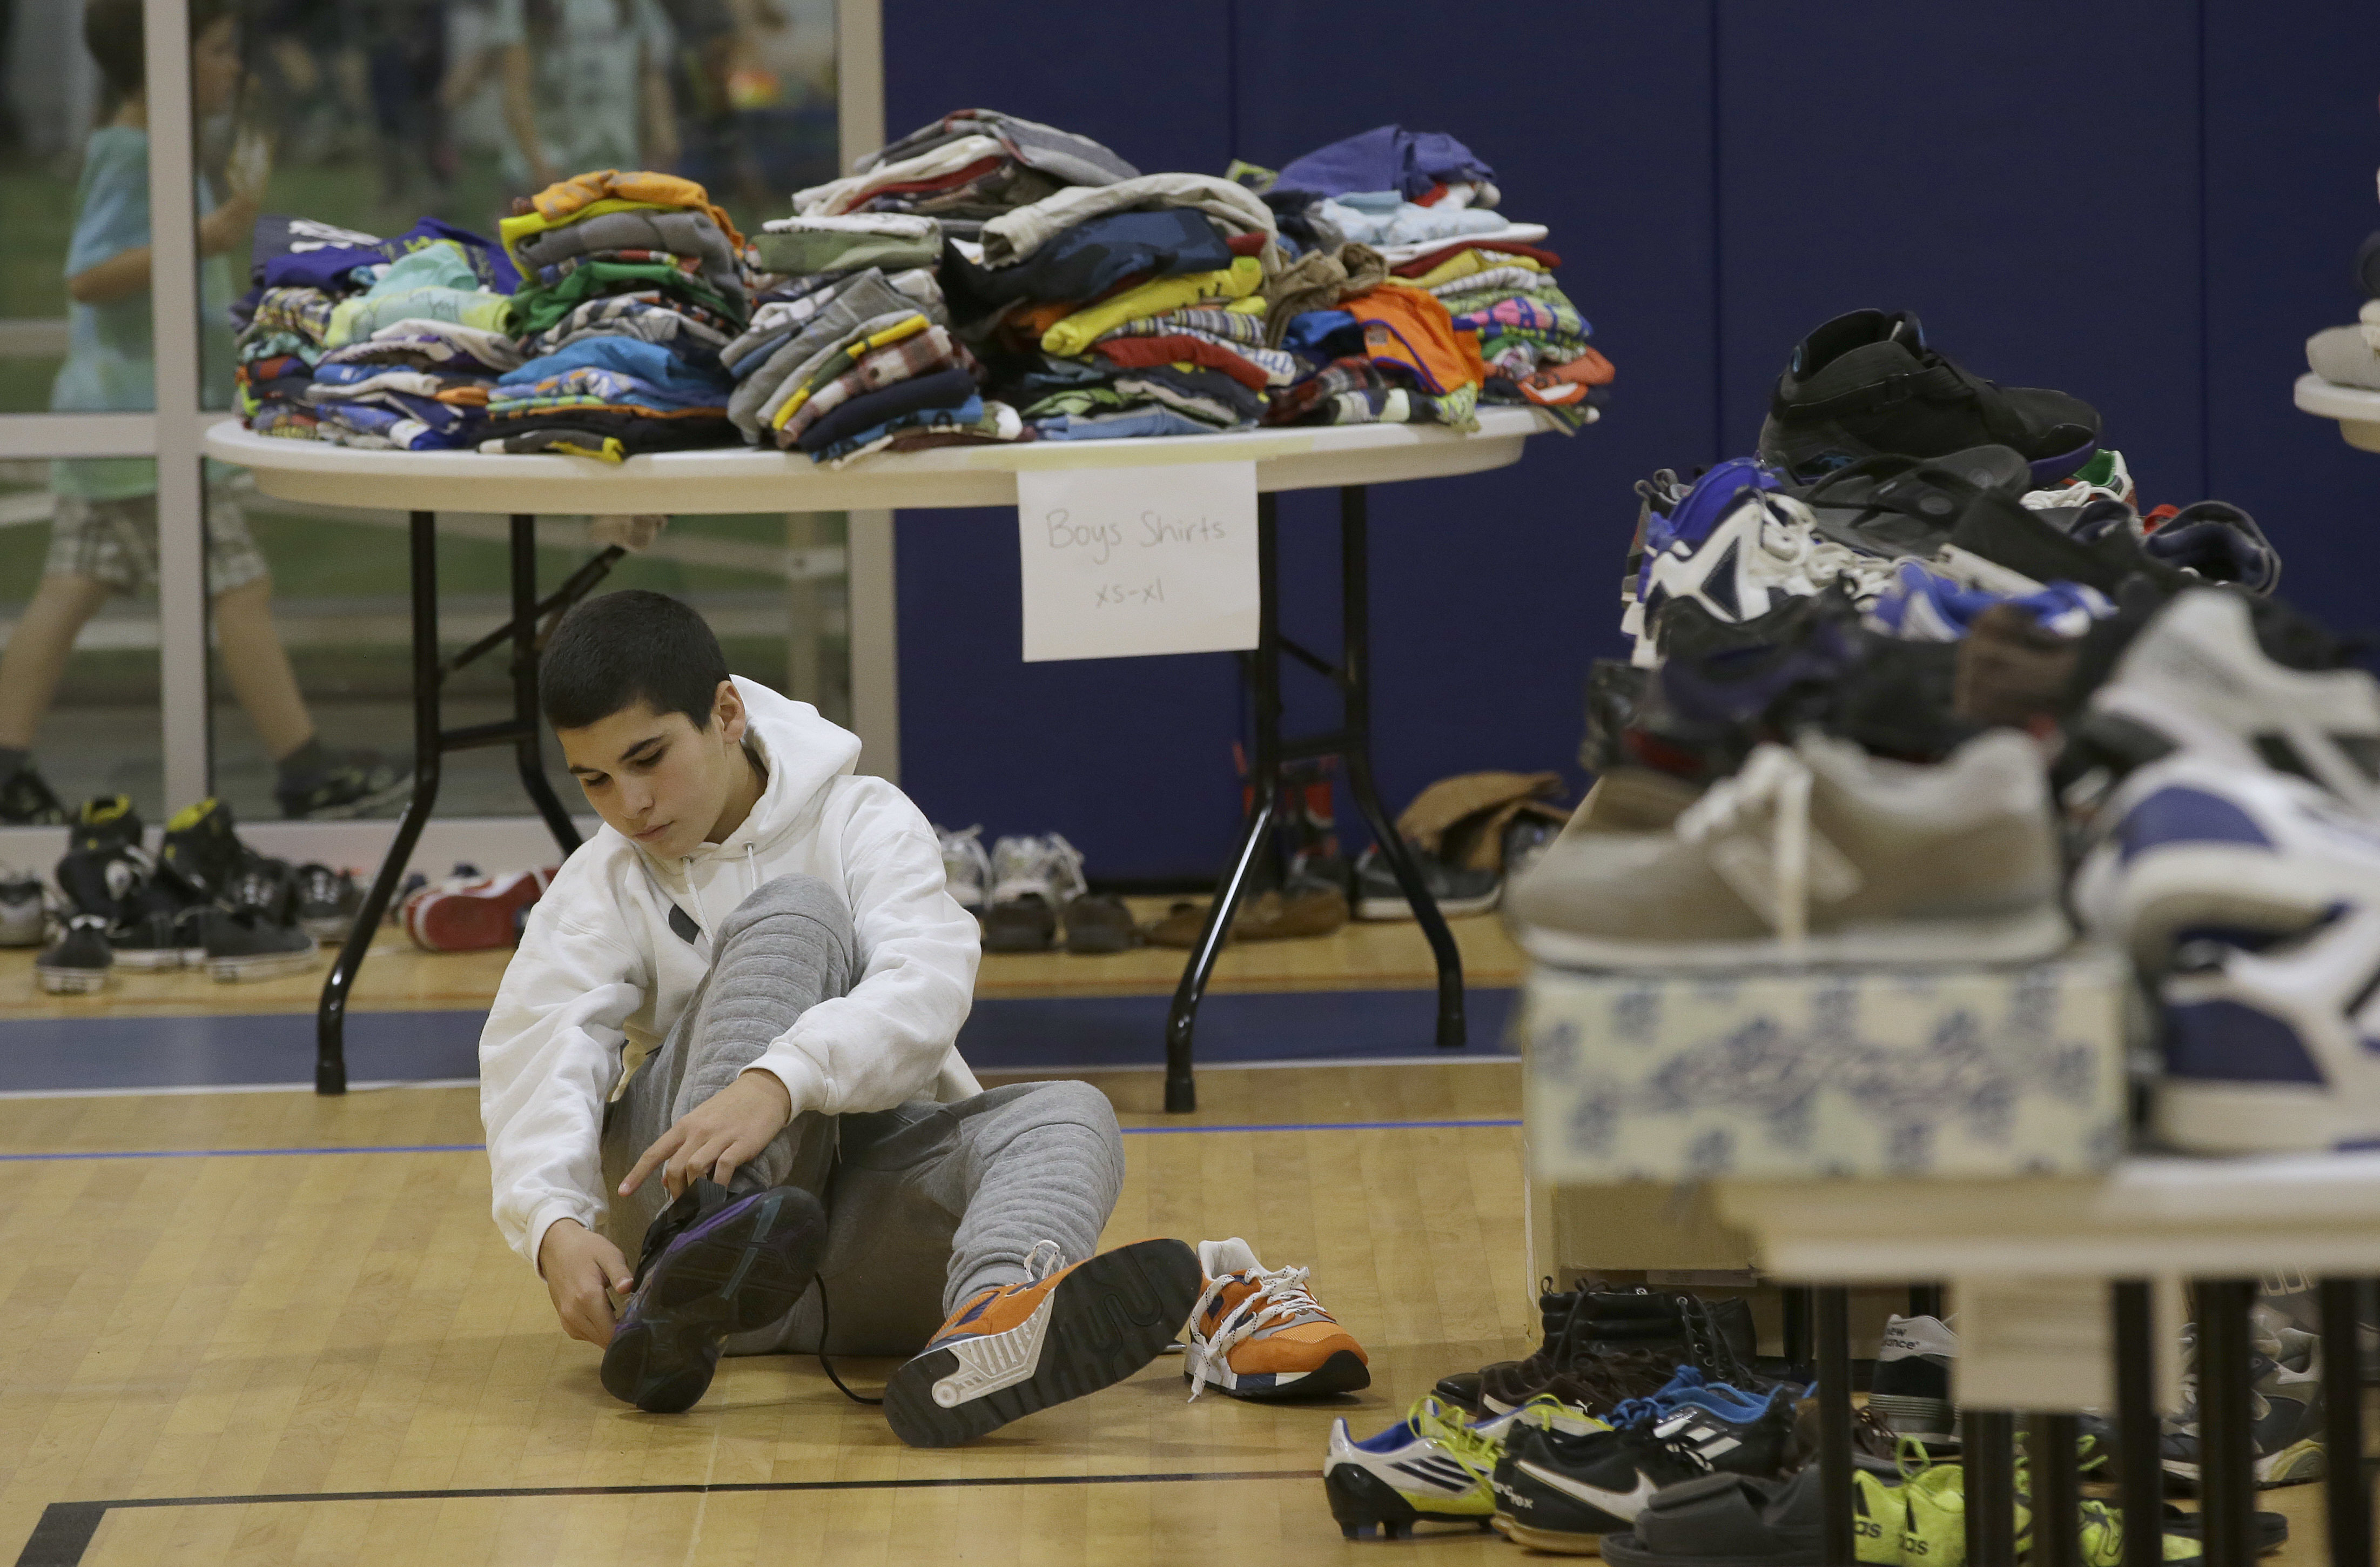 <div class='meta'><div class='origin-logo' data-origin='none'></div><span class='caption-text' data-credit='Rich Pedroncelli/AP Photo'>Mehdi Latrache, who lost his home, tries on shoes at a donation center for victims of the recent wildfires, Tuesday, Oct. 17, 2017, in Santa Rosa, Calif.</span></div>